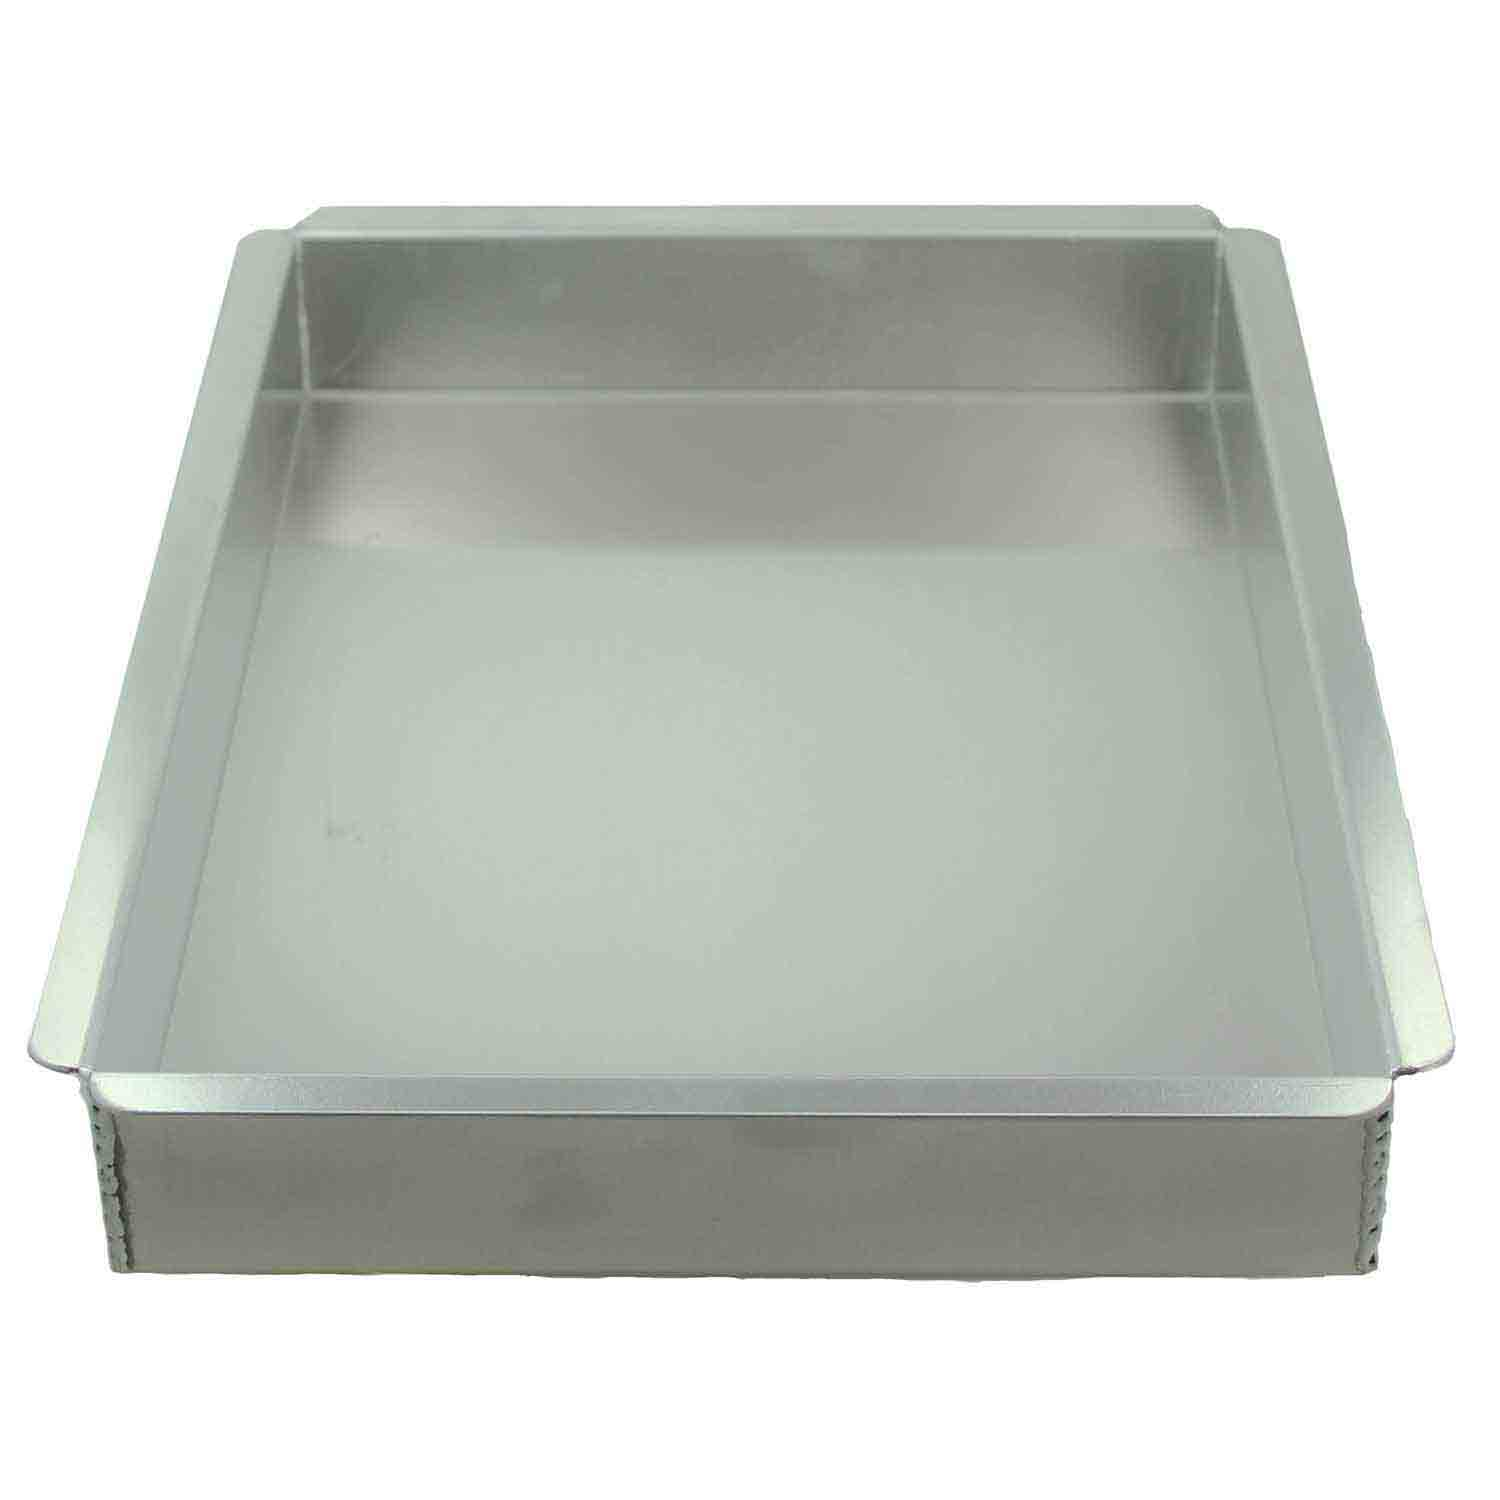 "10 X 15 x 2"" Magic Line Sheet Cake Pan"